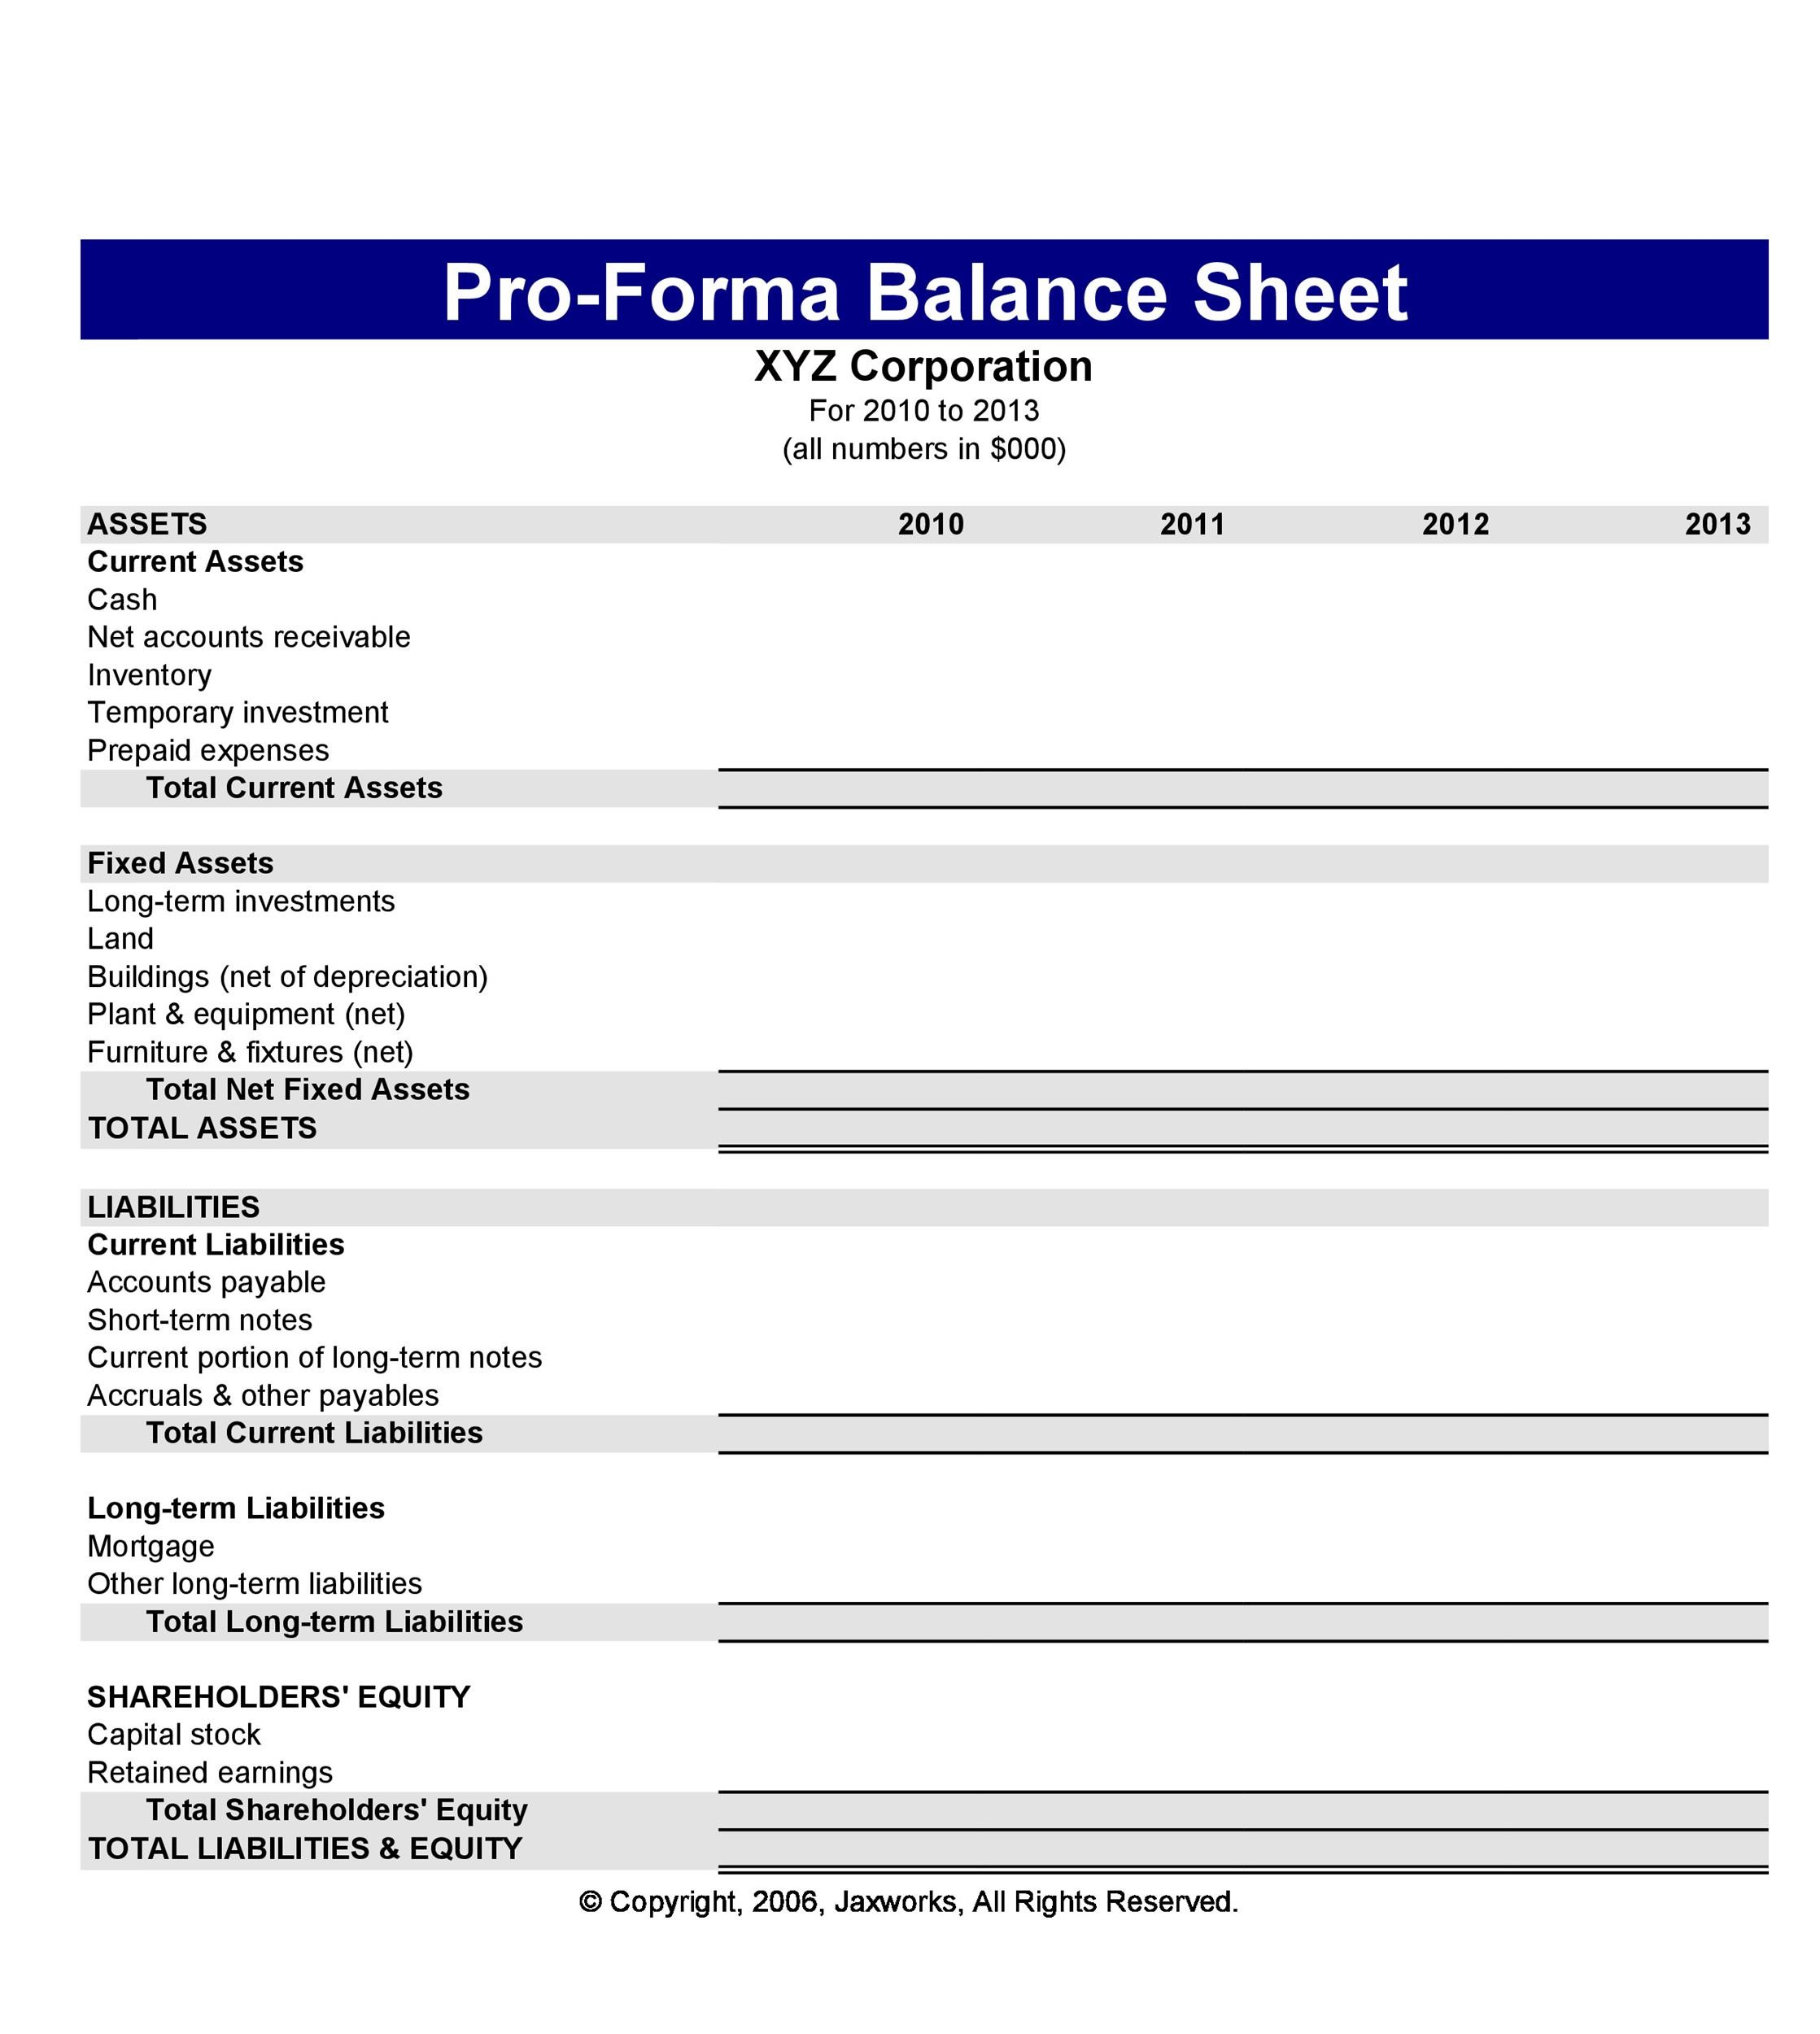 38 Free Balance Sheet Templates  Examples - Template Lab